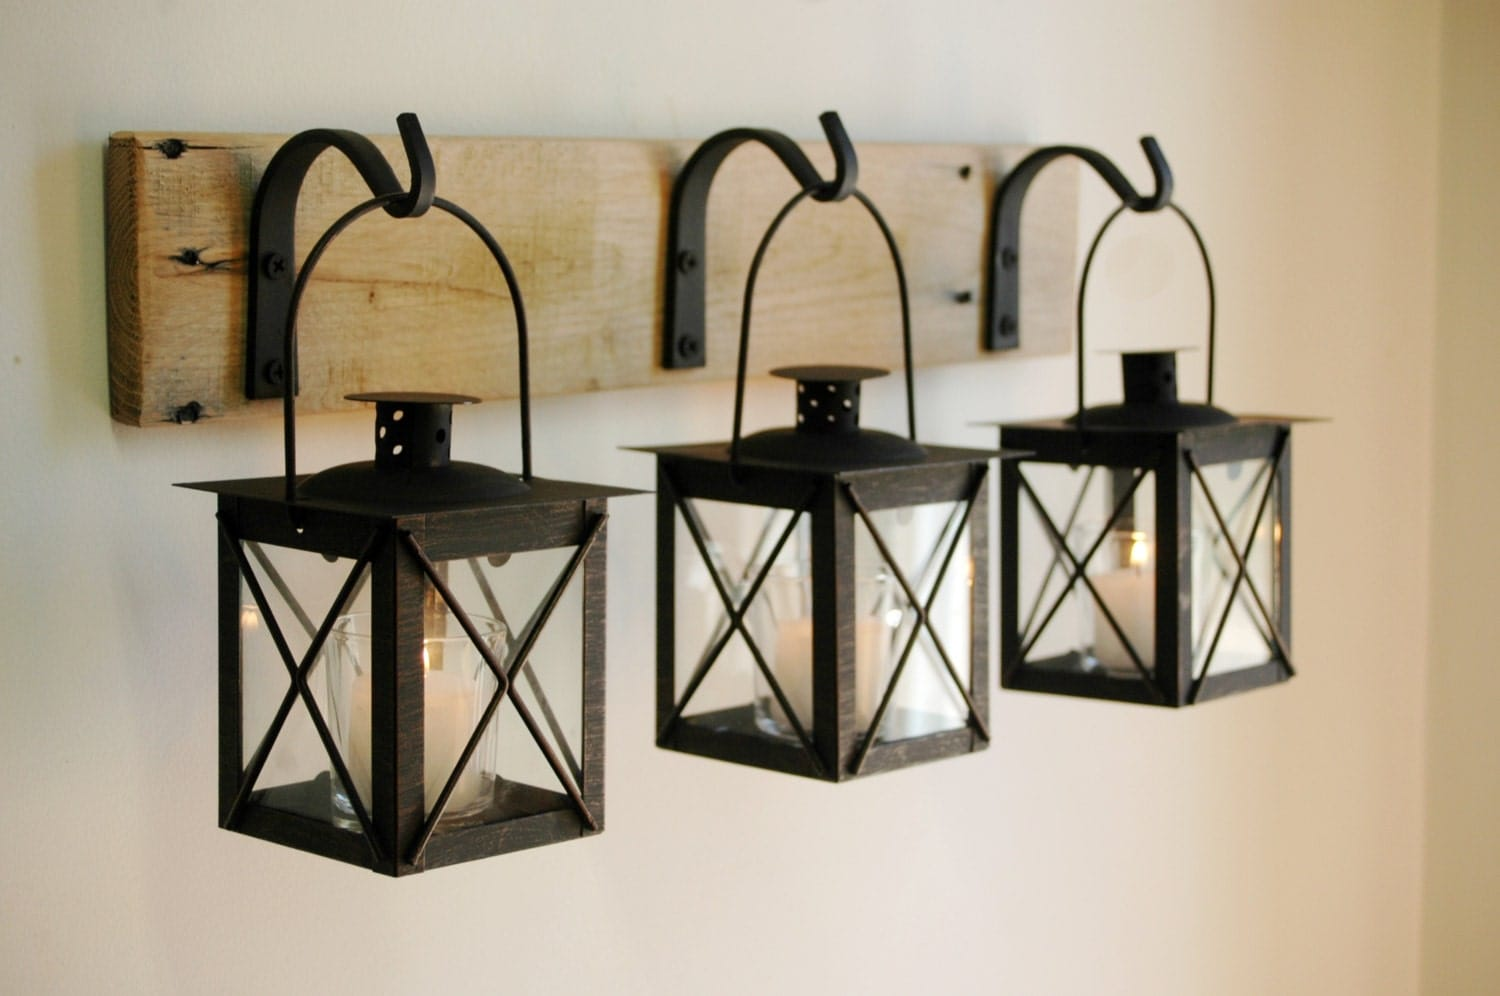 Black lantern trio wall decor home decor rustic decor Metal home decor